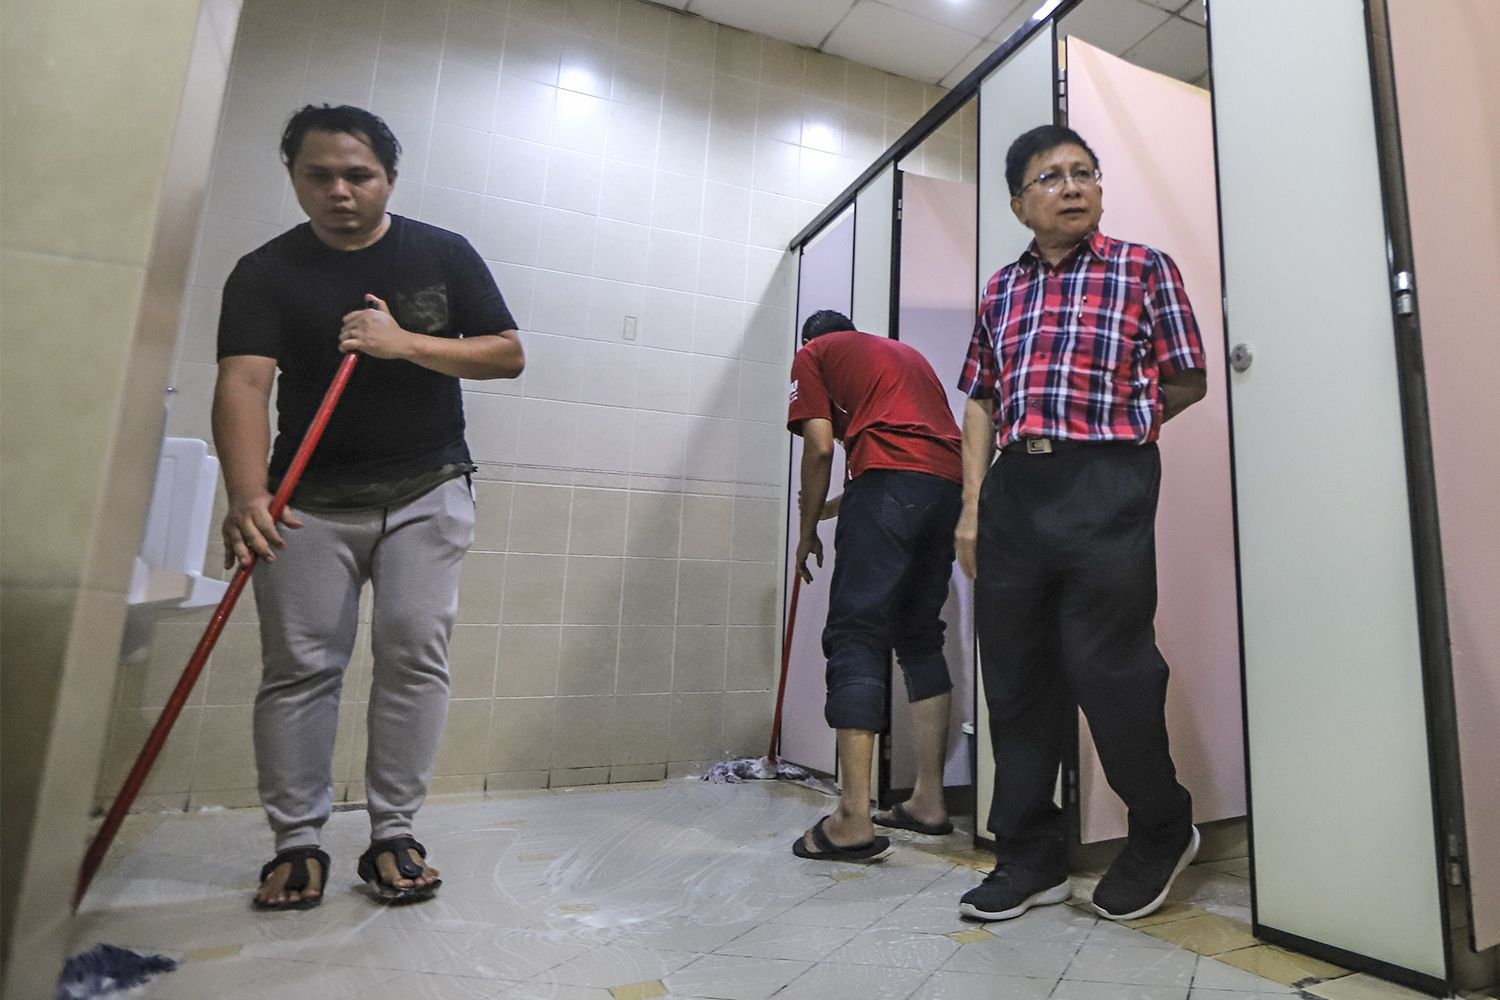 Chief Justice of Malaysia Tan Sri Richard Malanjum (right) monitoring court personnel during the 'gotong-royong' at the Kuala Lumpur Court Complex in Jalan Duta, July 29, 2018. ― Pictures by Azneal Ishak